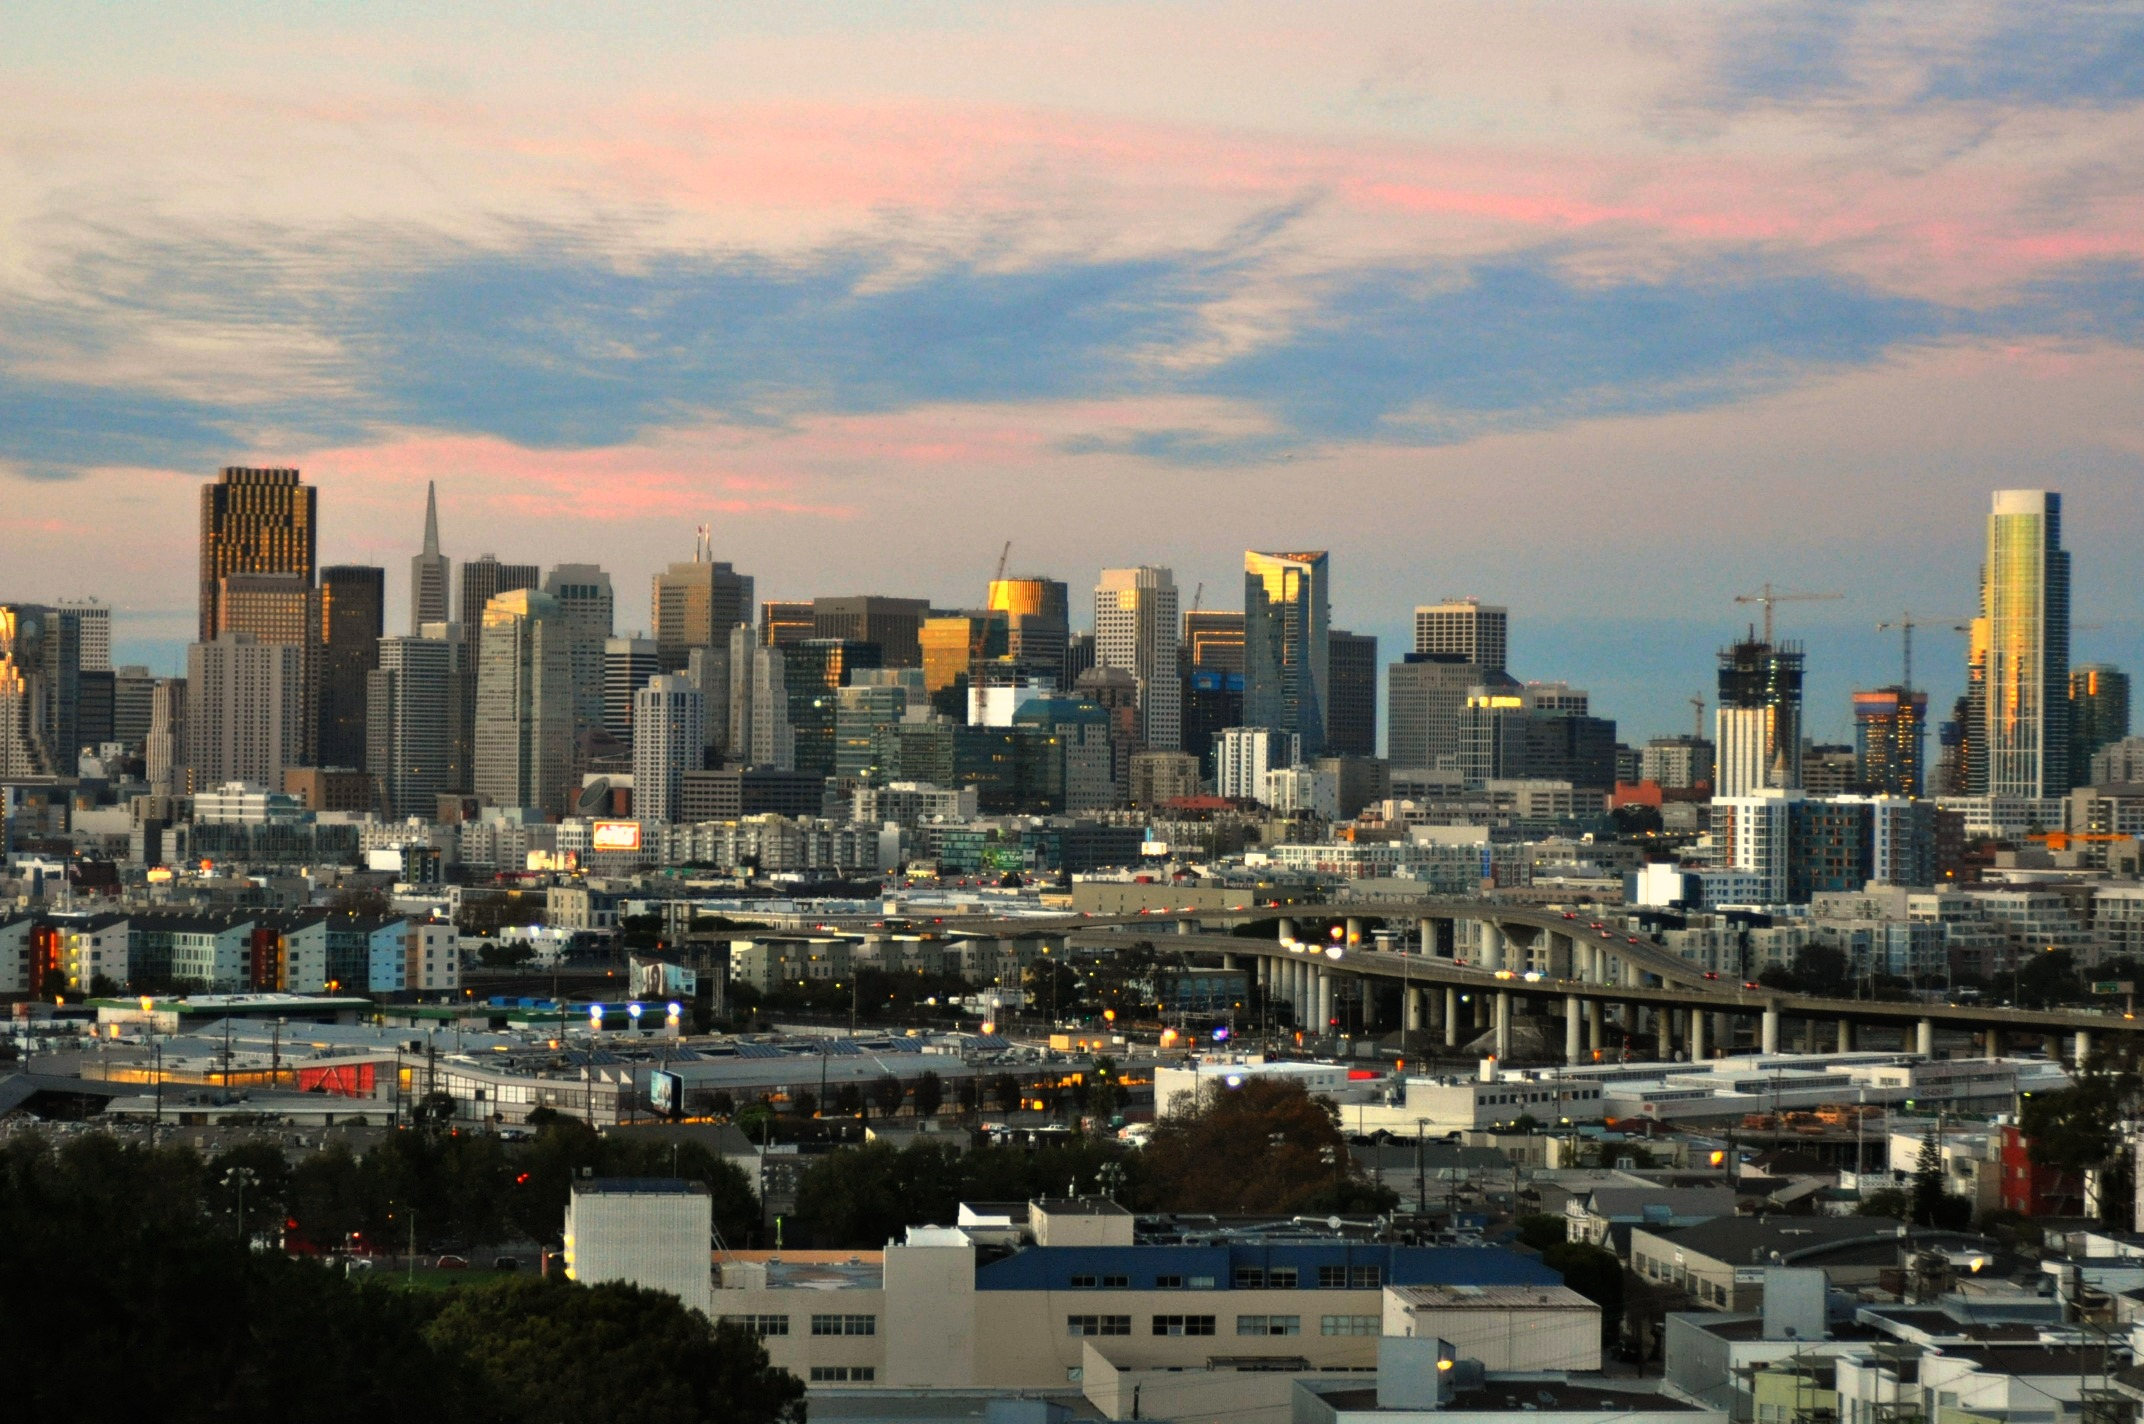 There's a magical quality to the panoramic vistas seen from atop Potrero Hill.